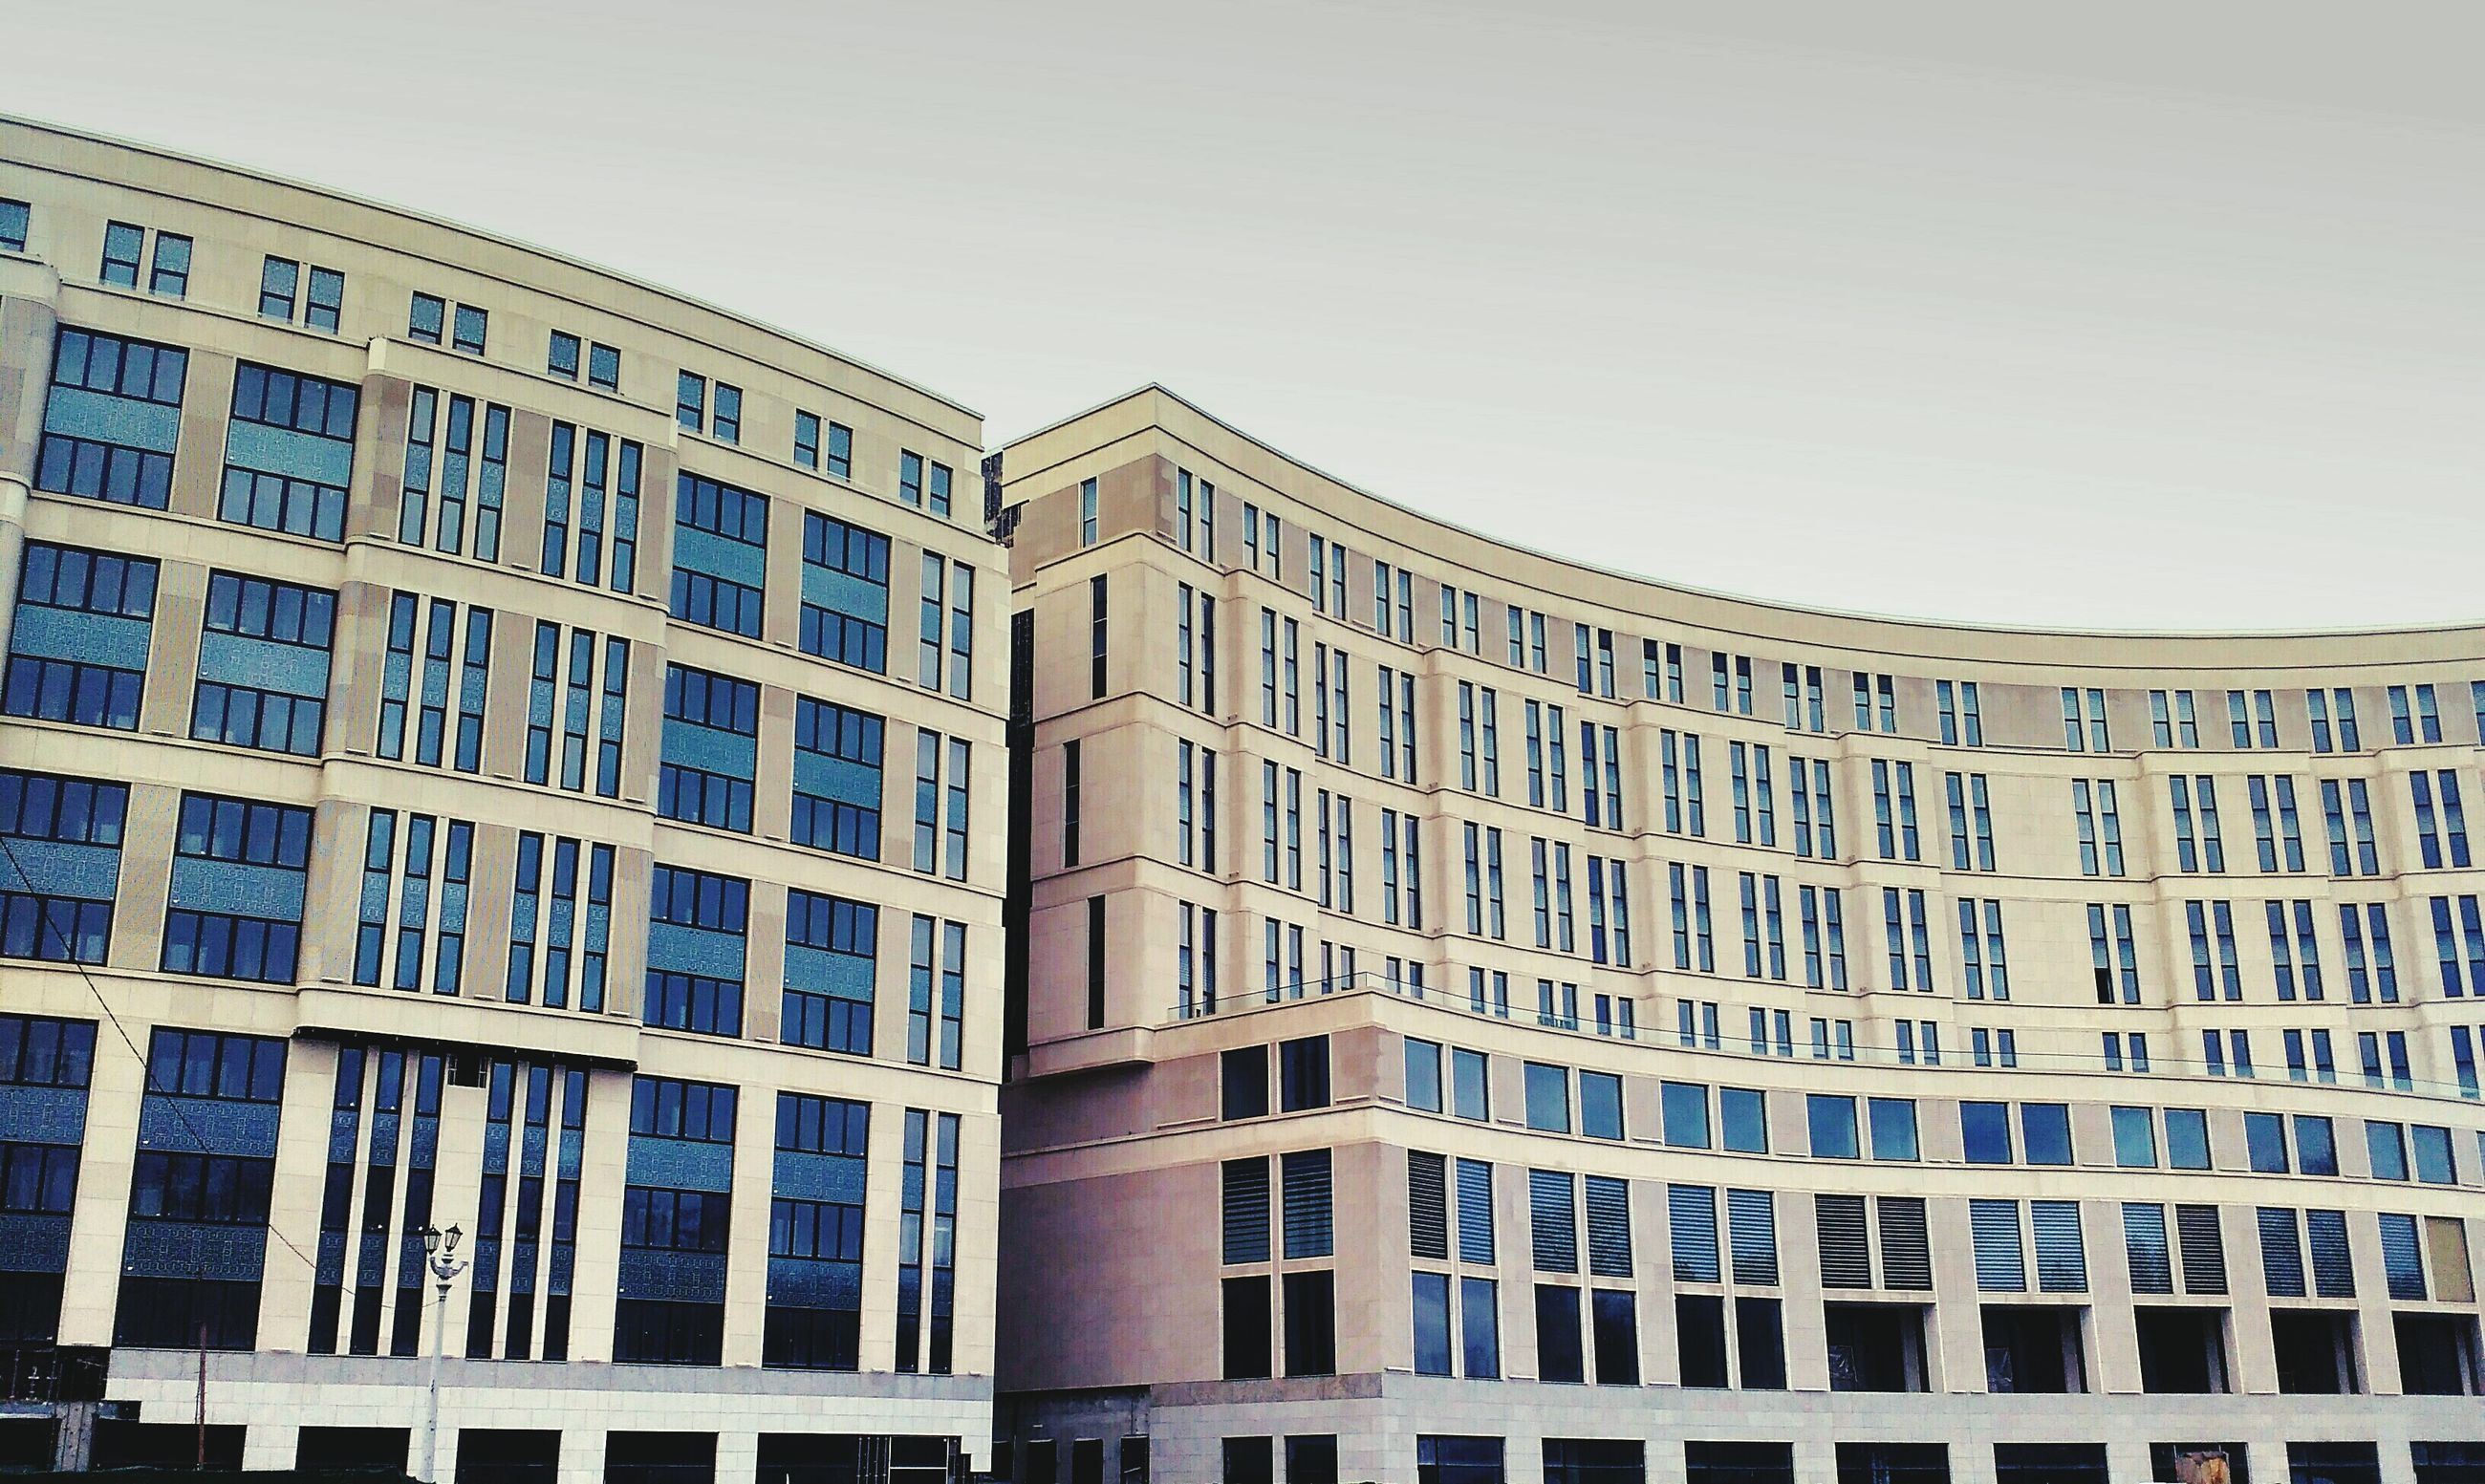 architecture, building exterior, built structure, low angle view, window, building, clear sky, city, in a row, repetition, modern, day, glass - material, office building, residential building, pattern, outdoors, no people, residential structure, sky